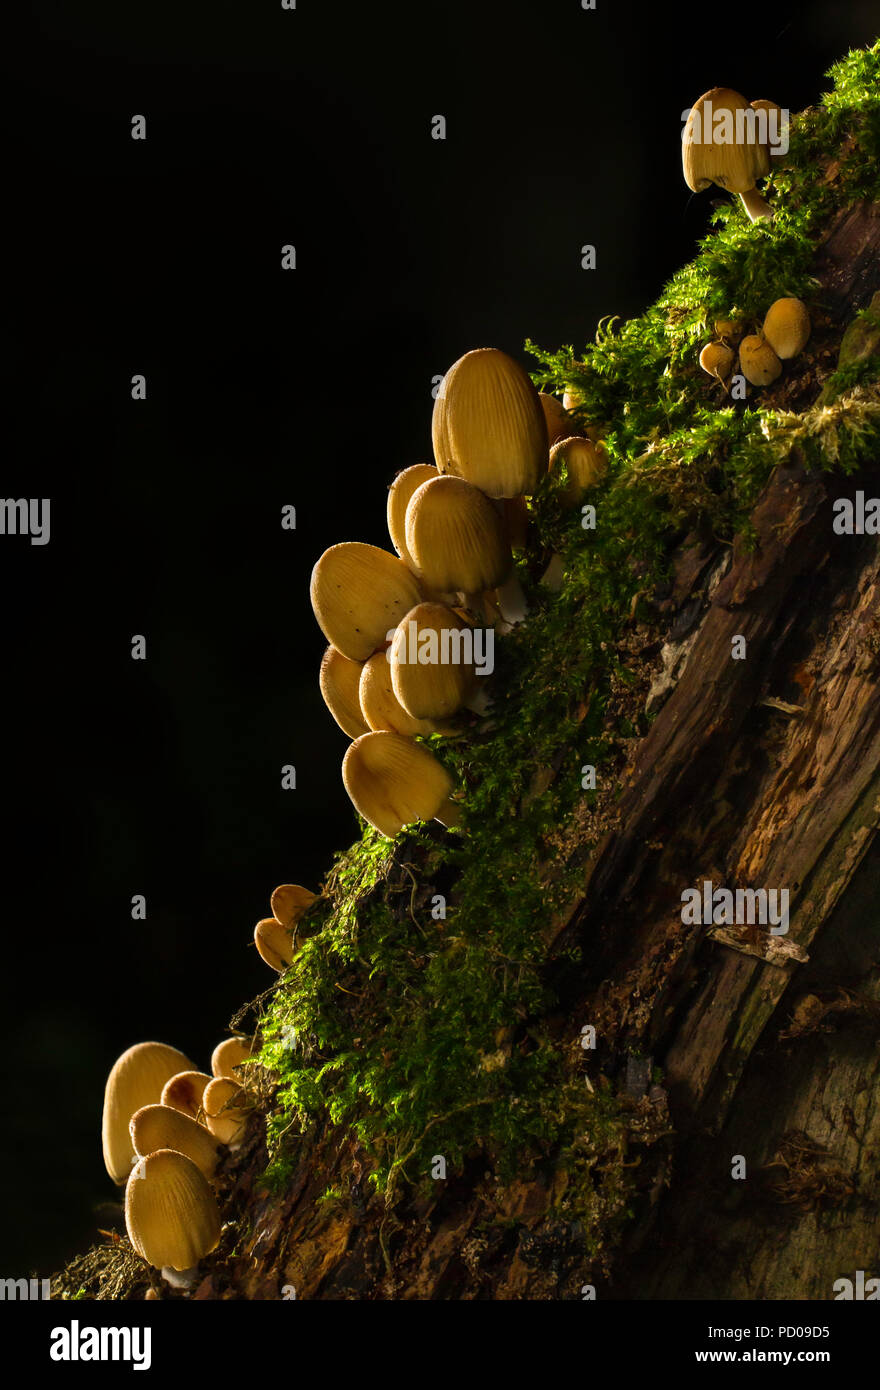 Group of fungi, Coprinellus micaceus or Glistening Inkcap, growing on the stump of a fallen tree. - Stock Image